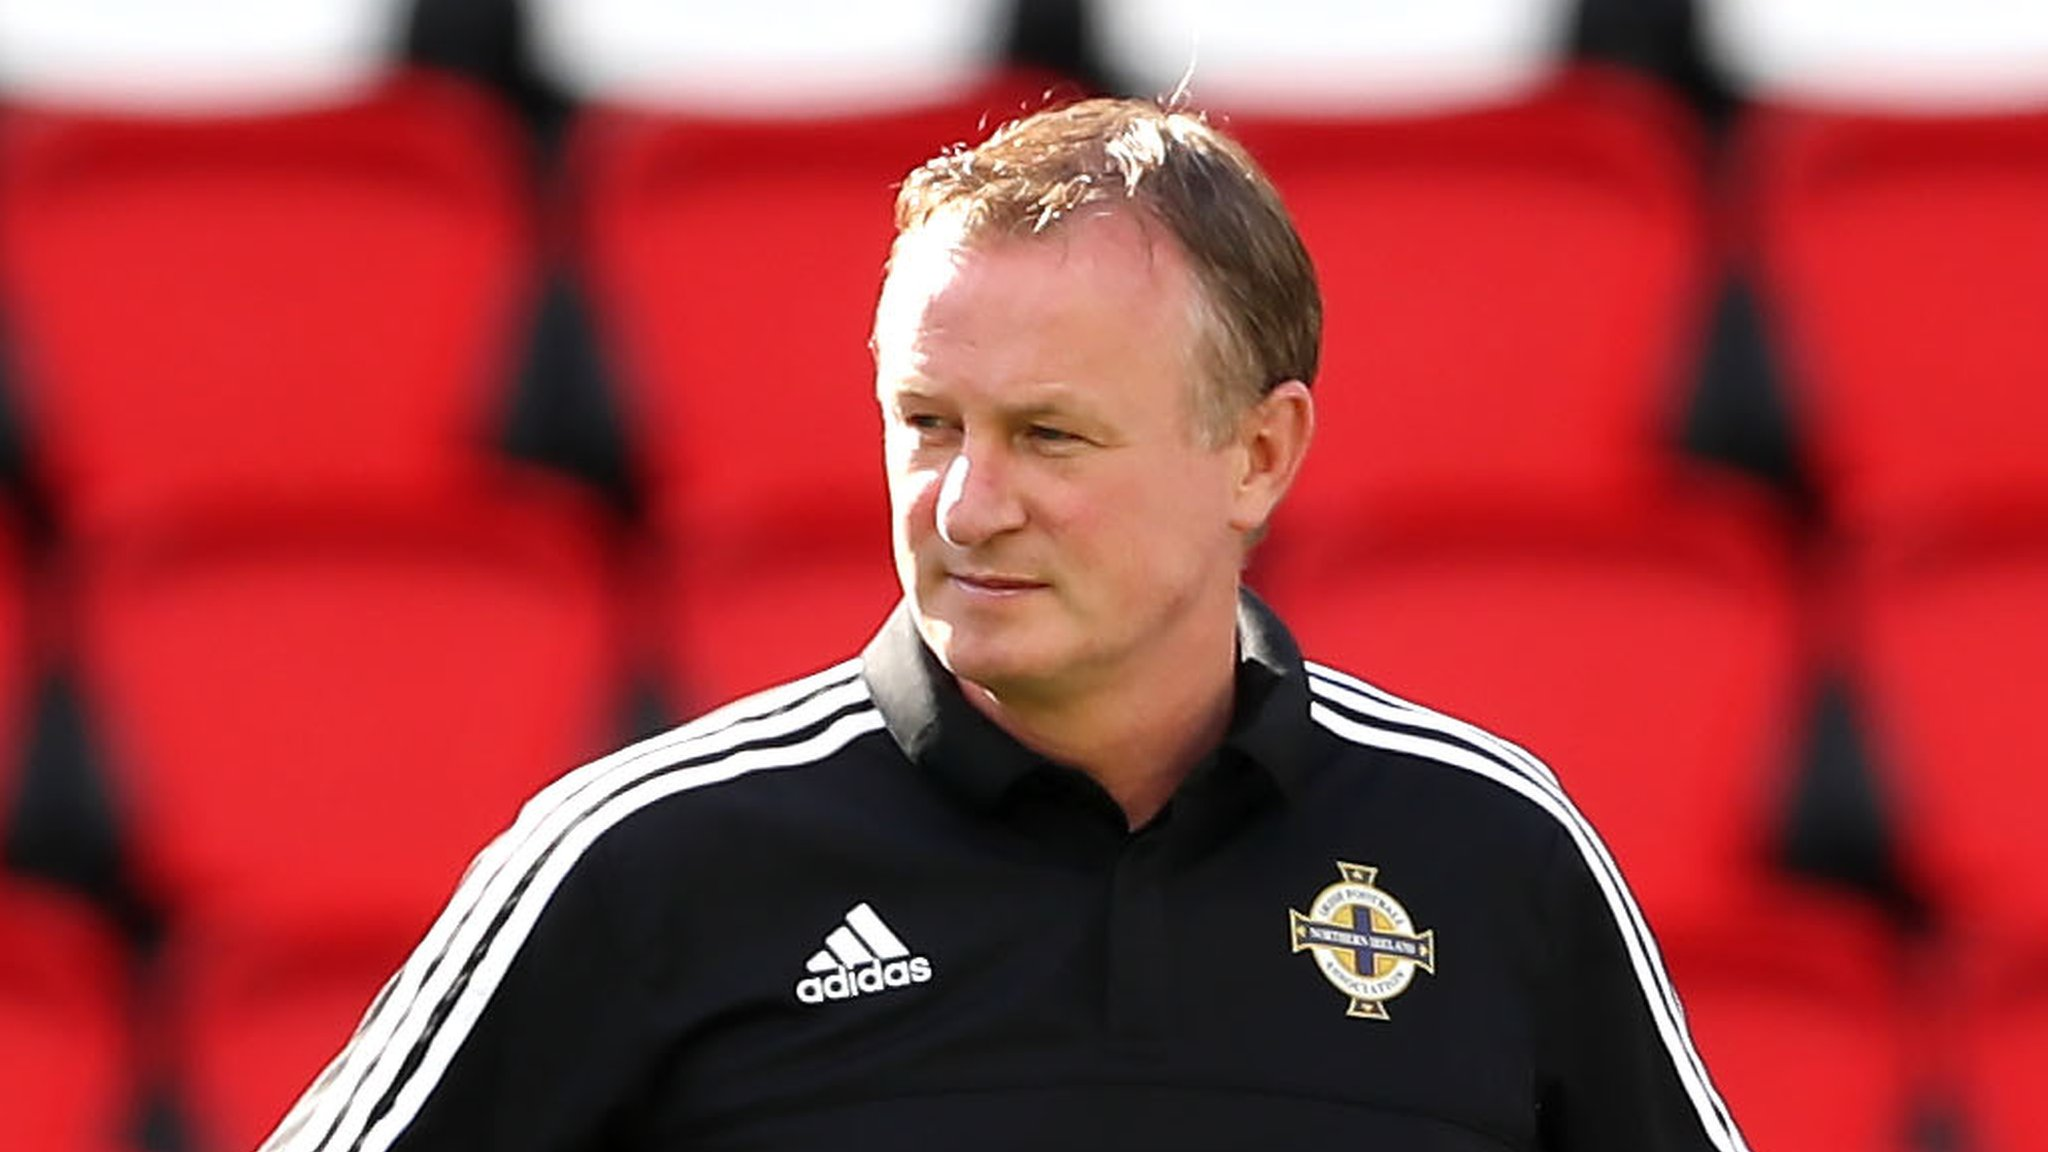 World Cup 2018: N Ireland boss O'Neill looks to future